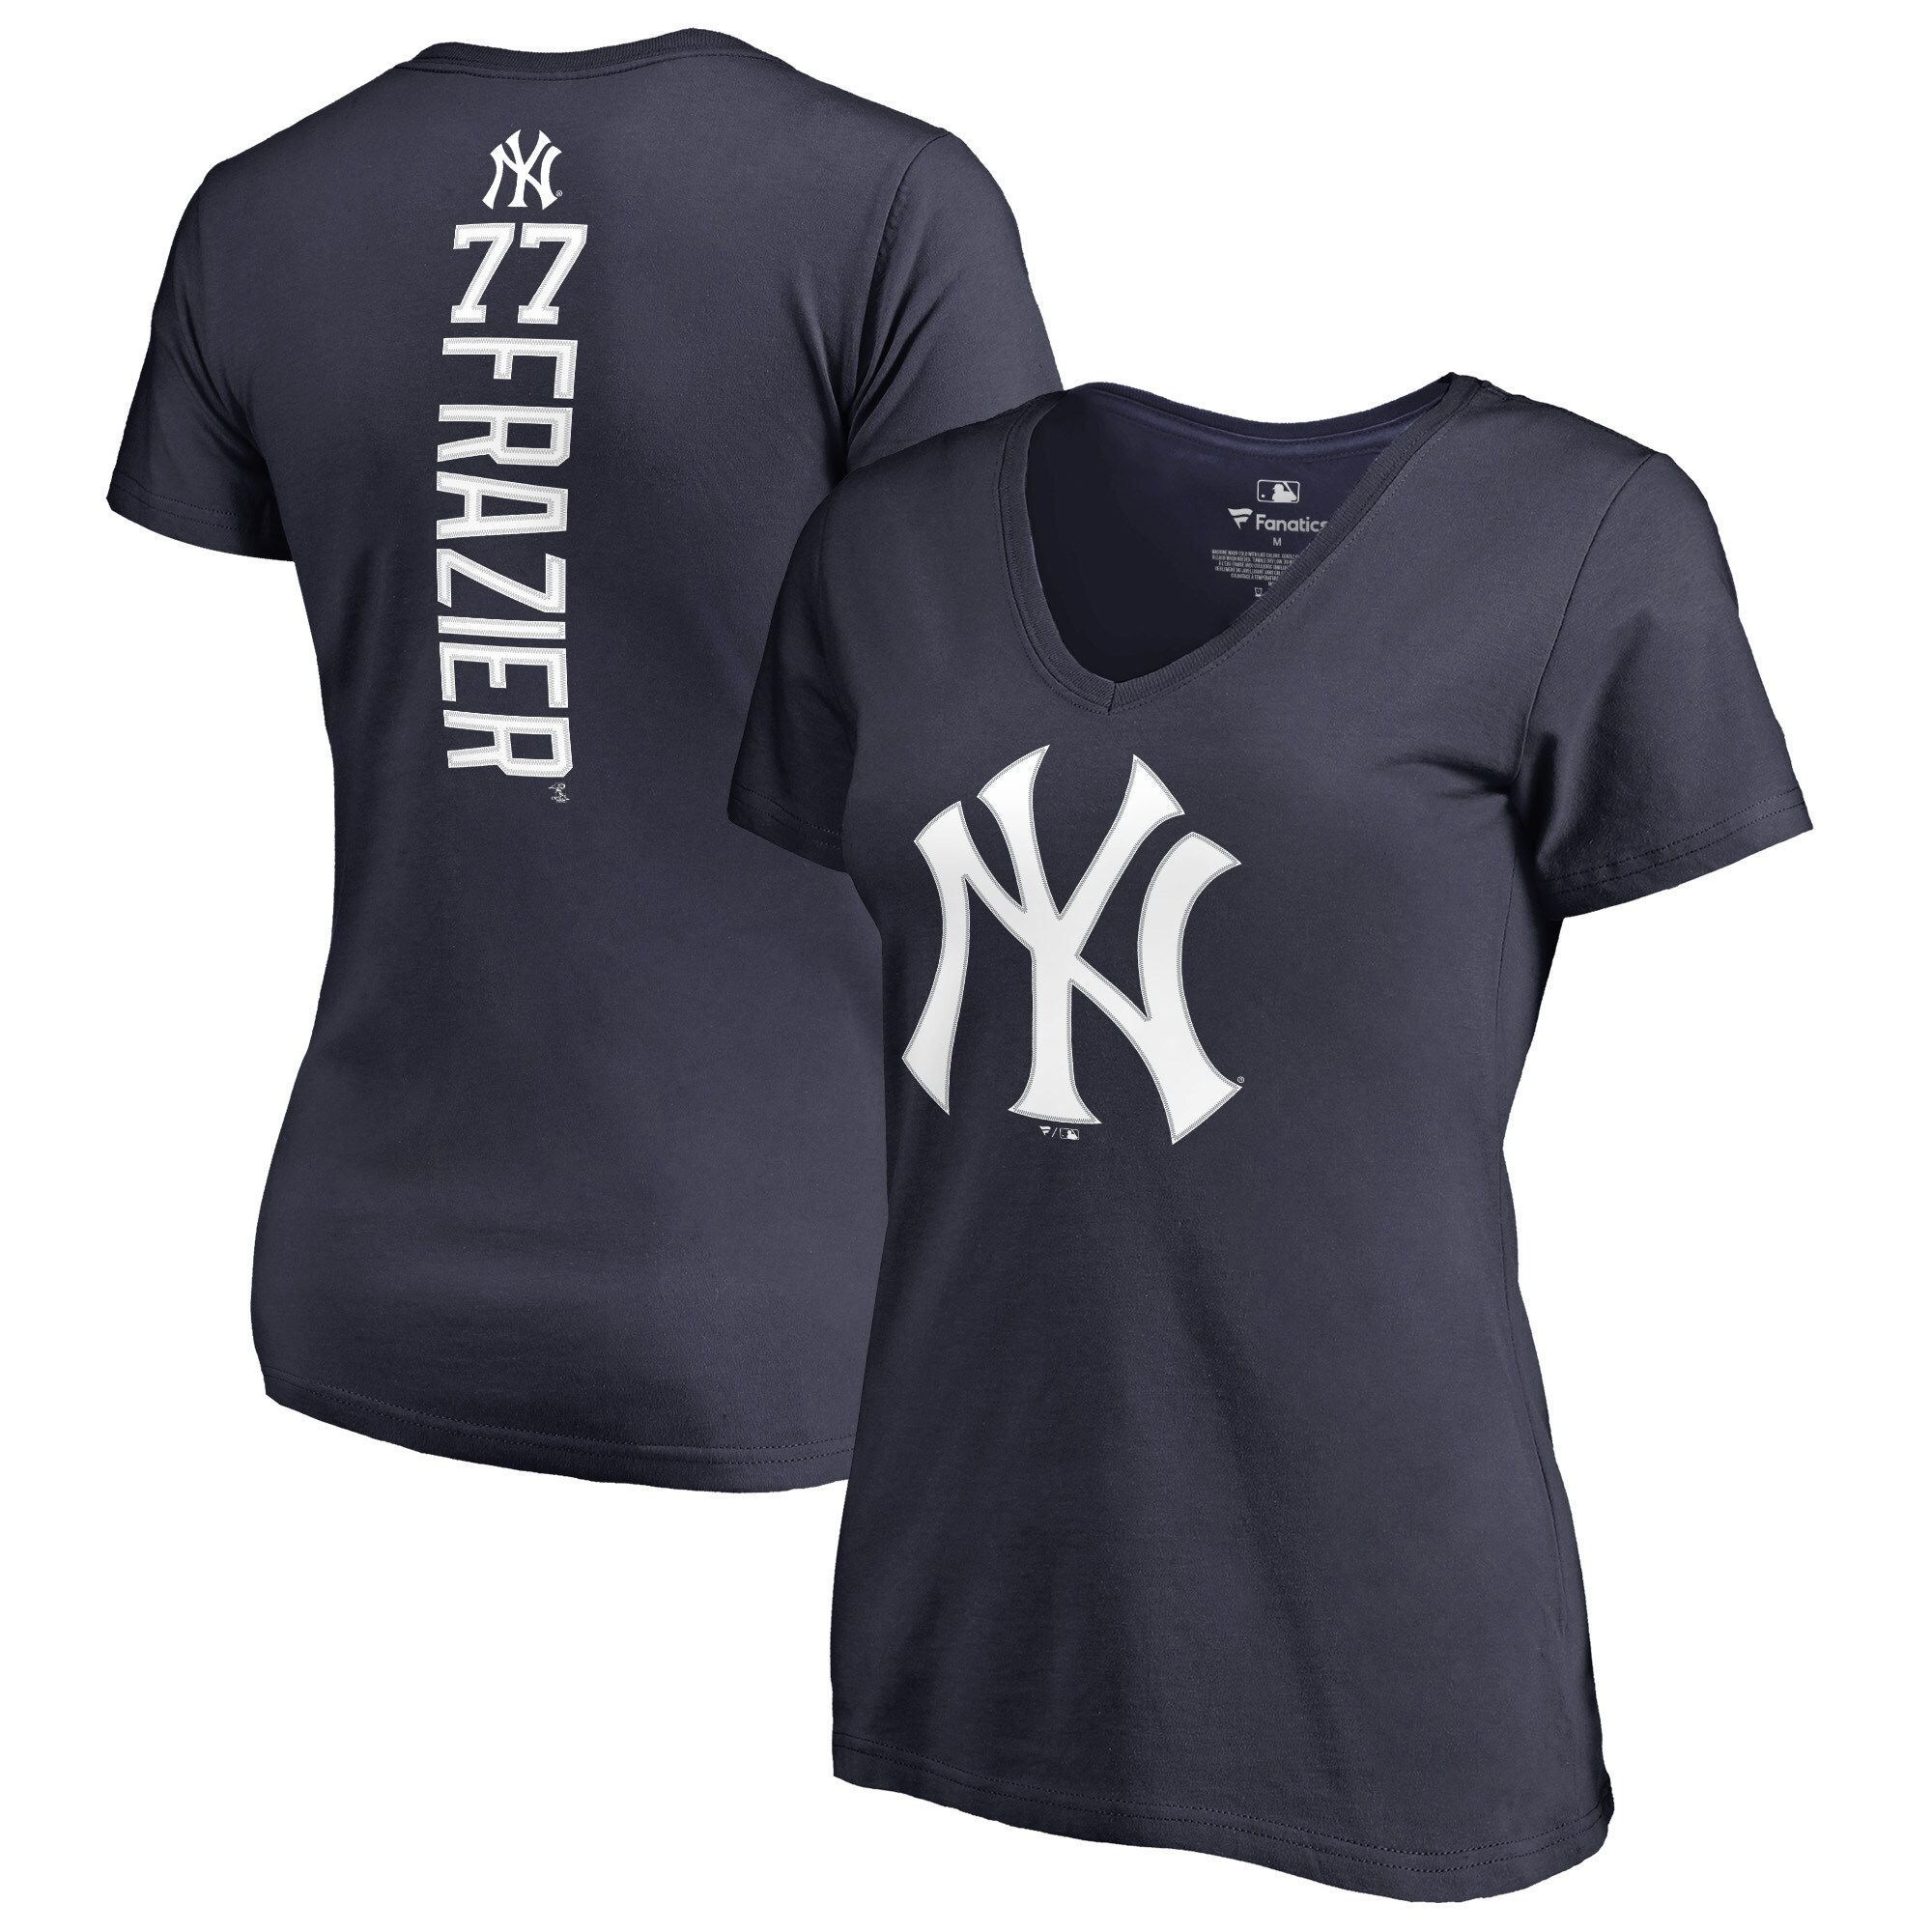 Clint Frazier New York Yankees Fanatics Branded Women's Backer V-Neck T-Shirt - Navy